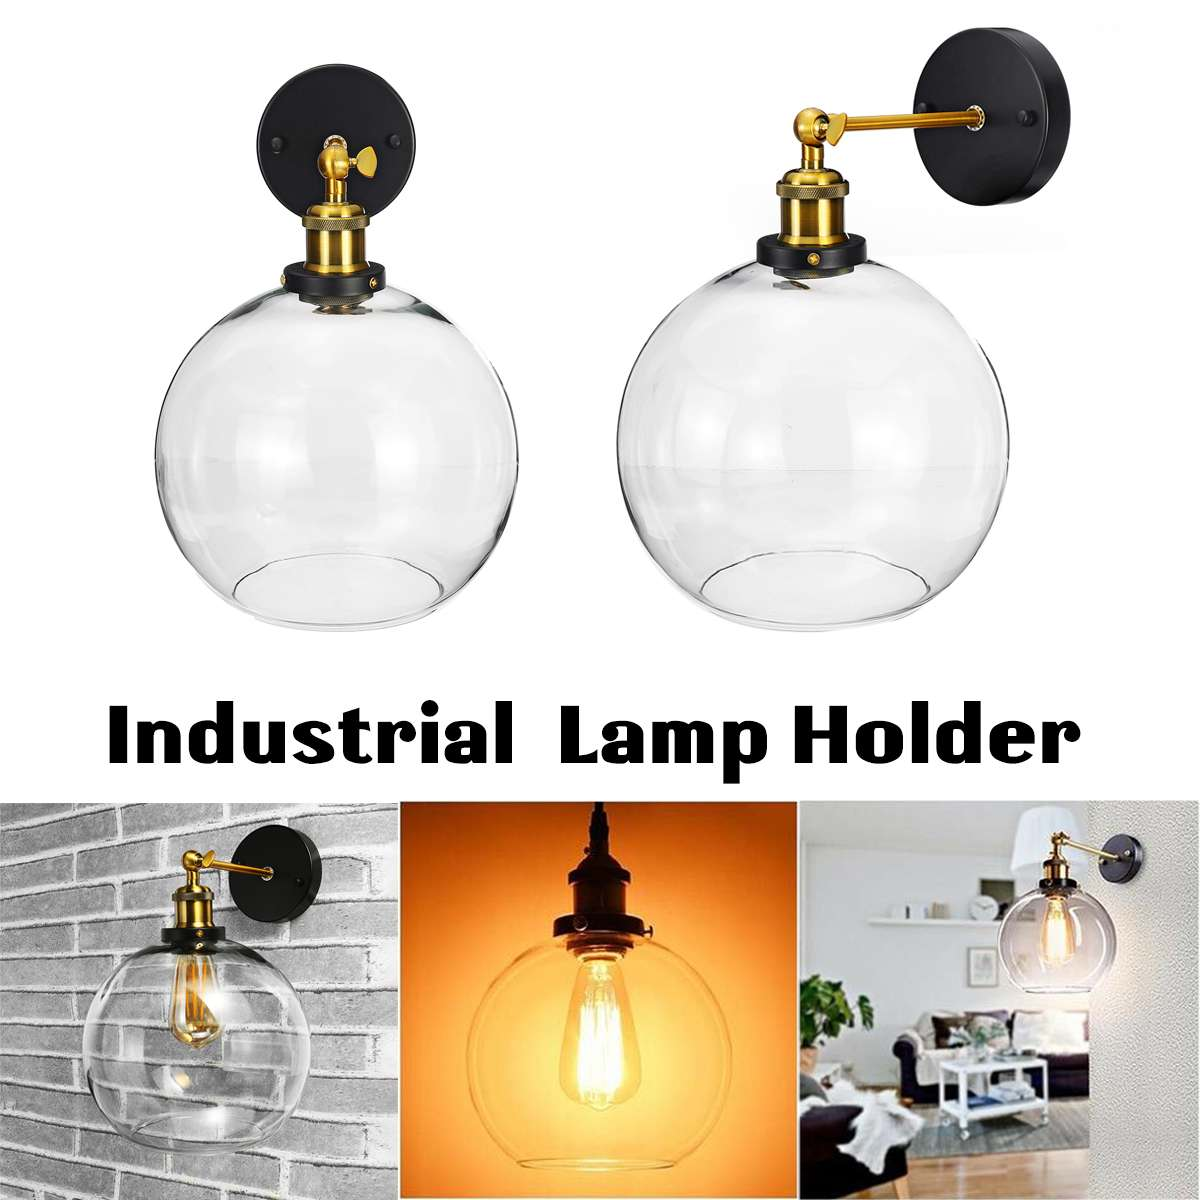 Holder, Lamps, Decorative, Antique, Metal, Style